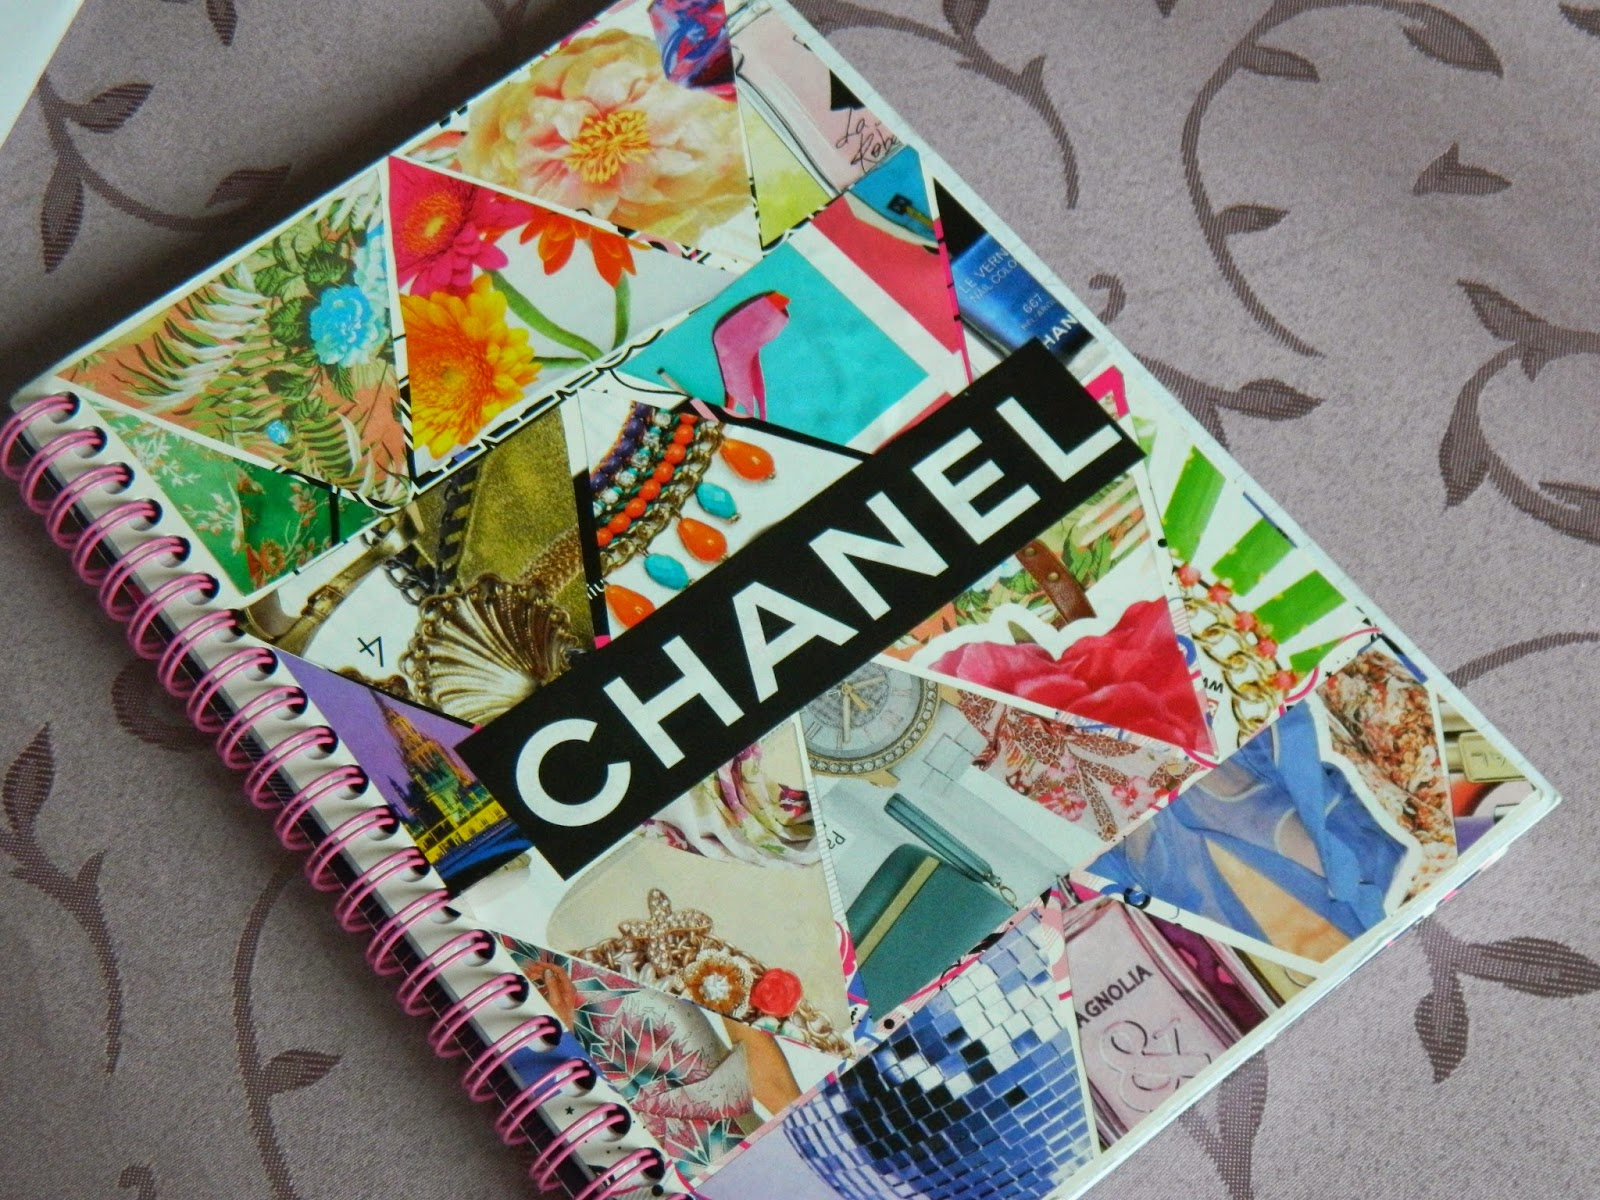 Glamcouture Diy Tumblr Inspired Notebook Cover Stickers